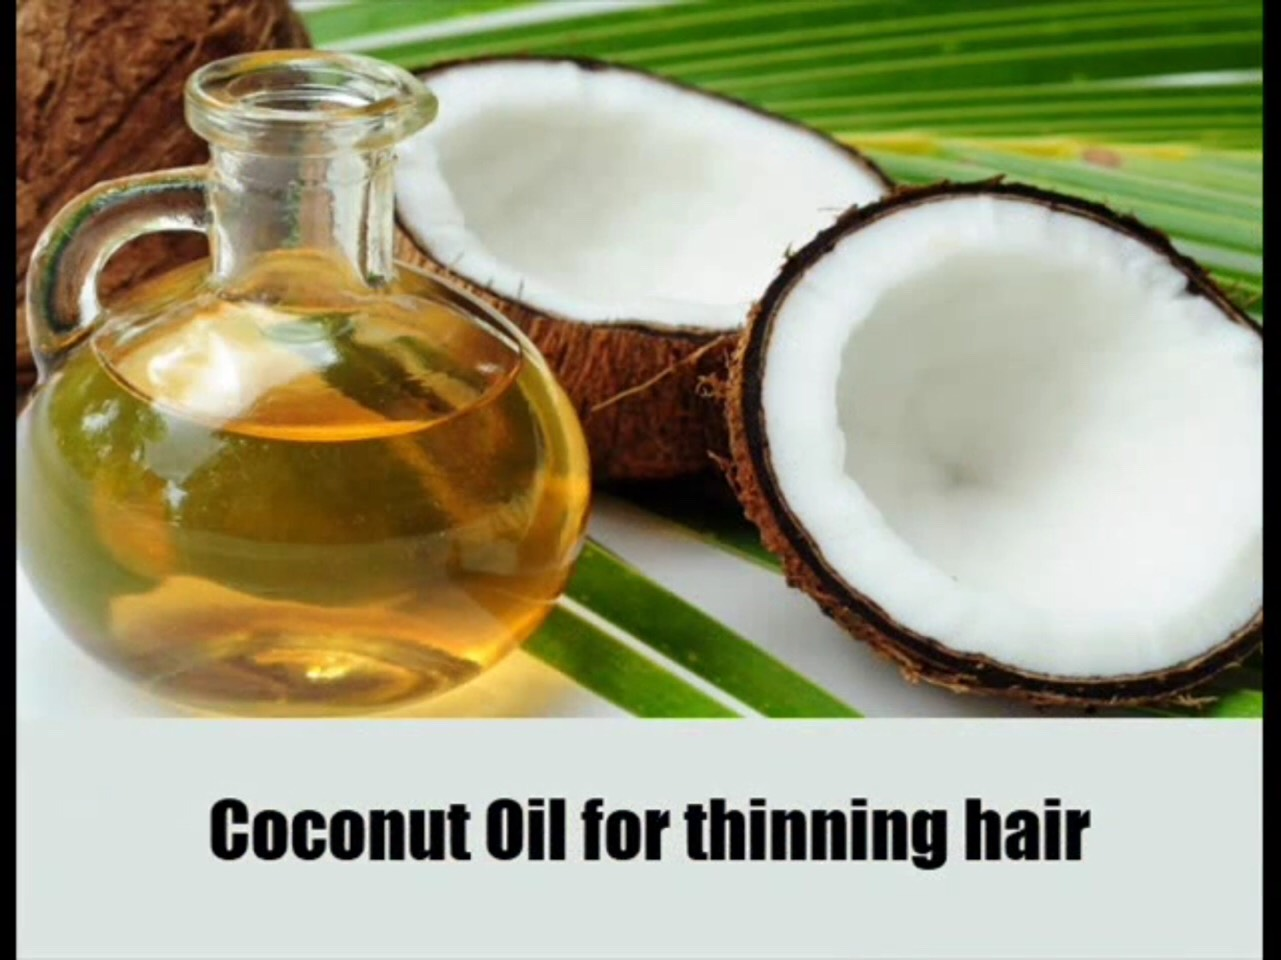 An individual can use a mixture of coconut oil (4 tbsp) and lime juice (2 tsp) for treating the problem of thinning hair. It is advisable to massage the scalp with this mixture for atleast 10–15 mins. Further, this mixture should be removed only after 60–75 minutes in order to obtain better results.